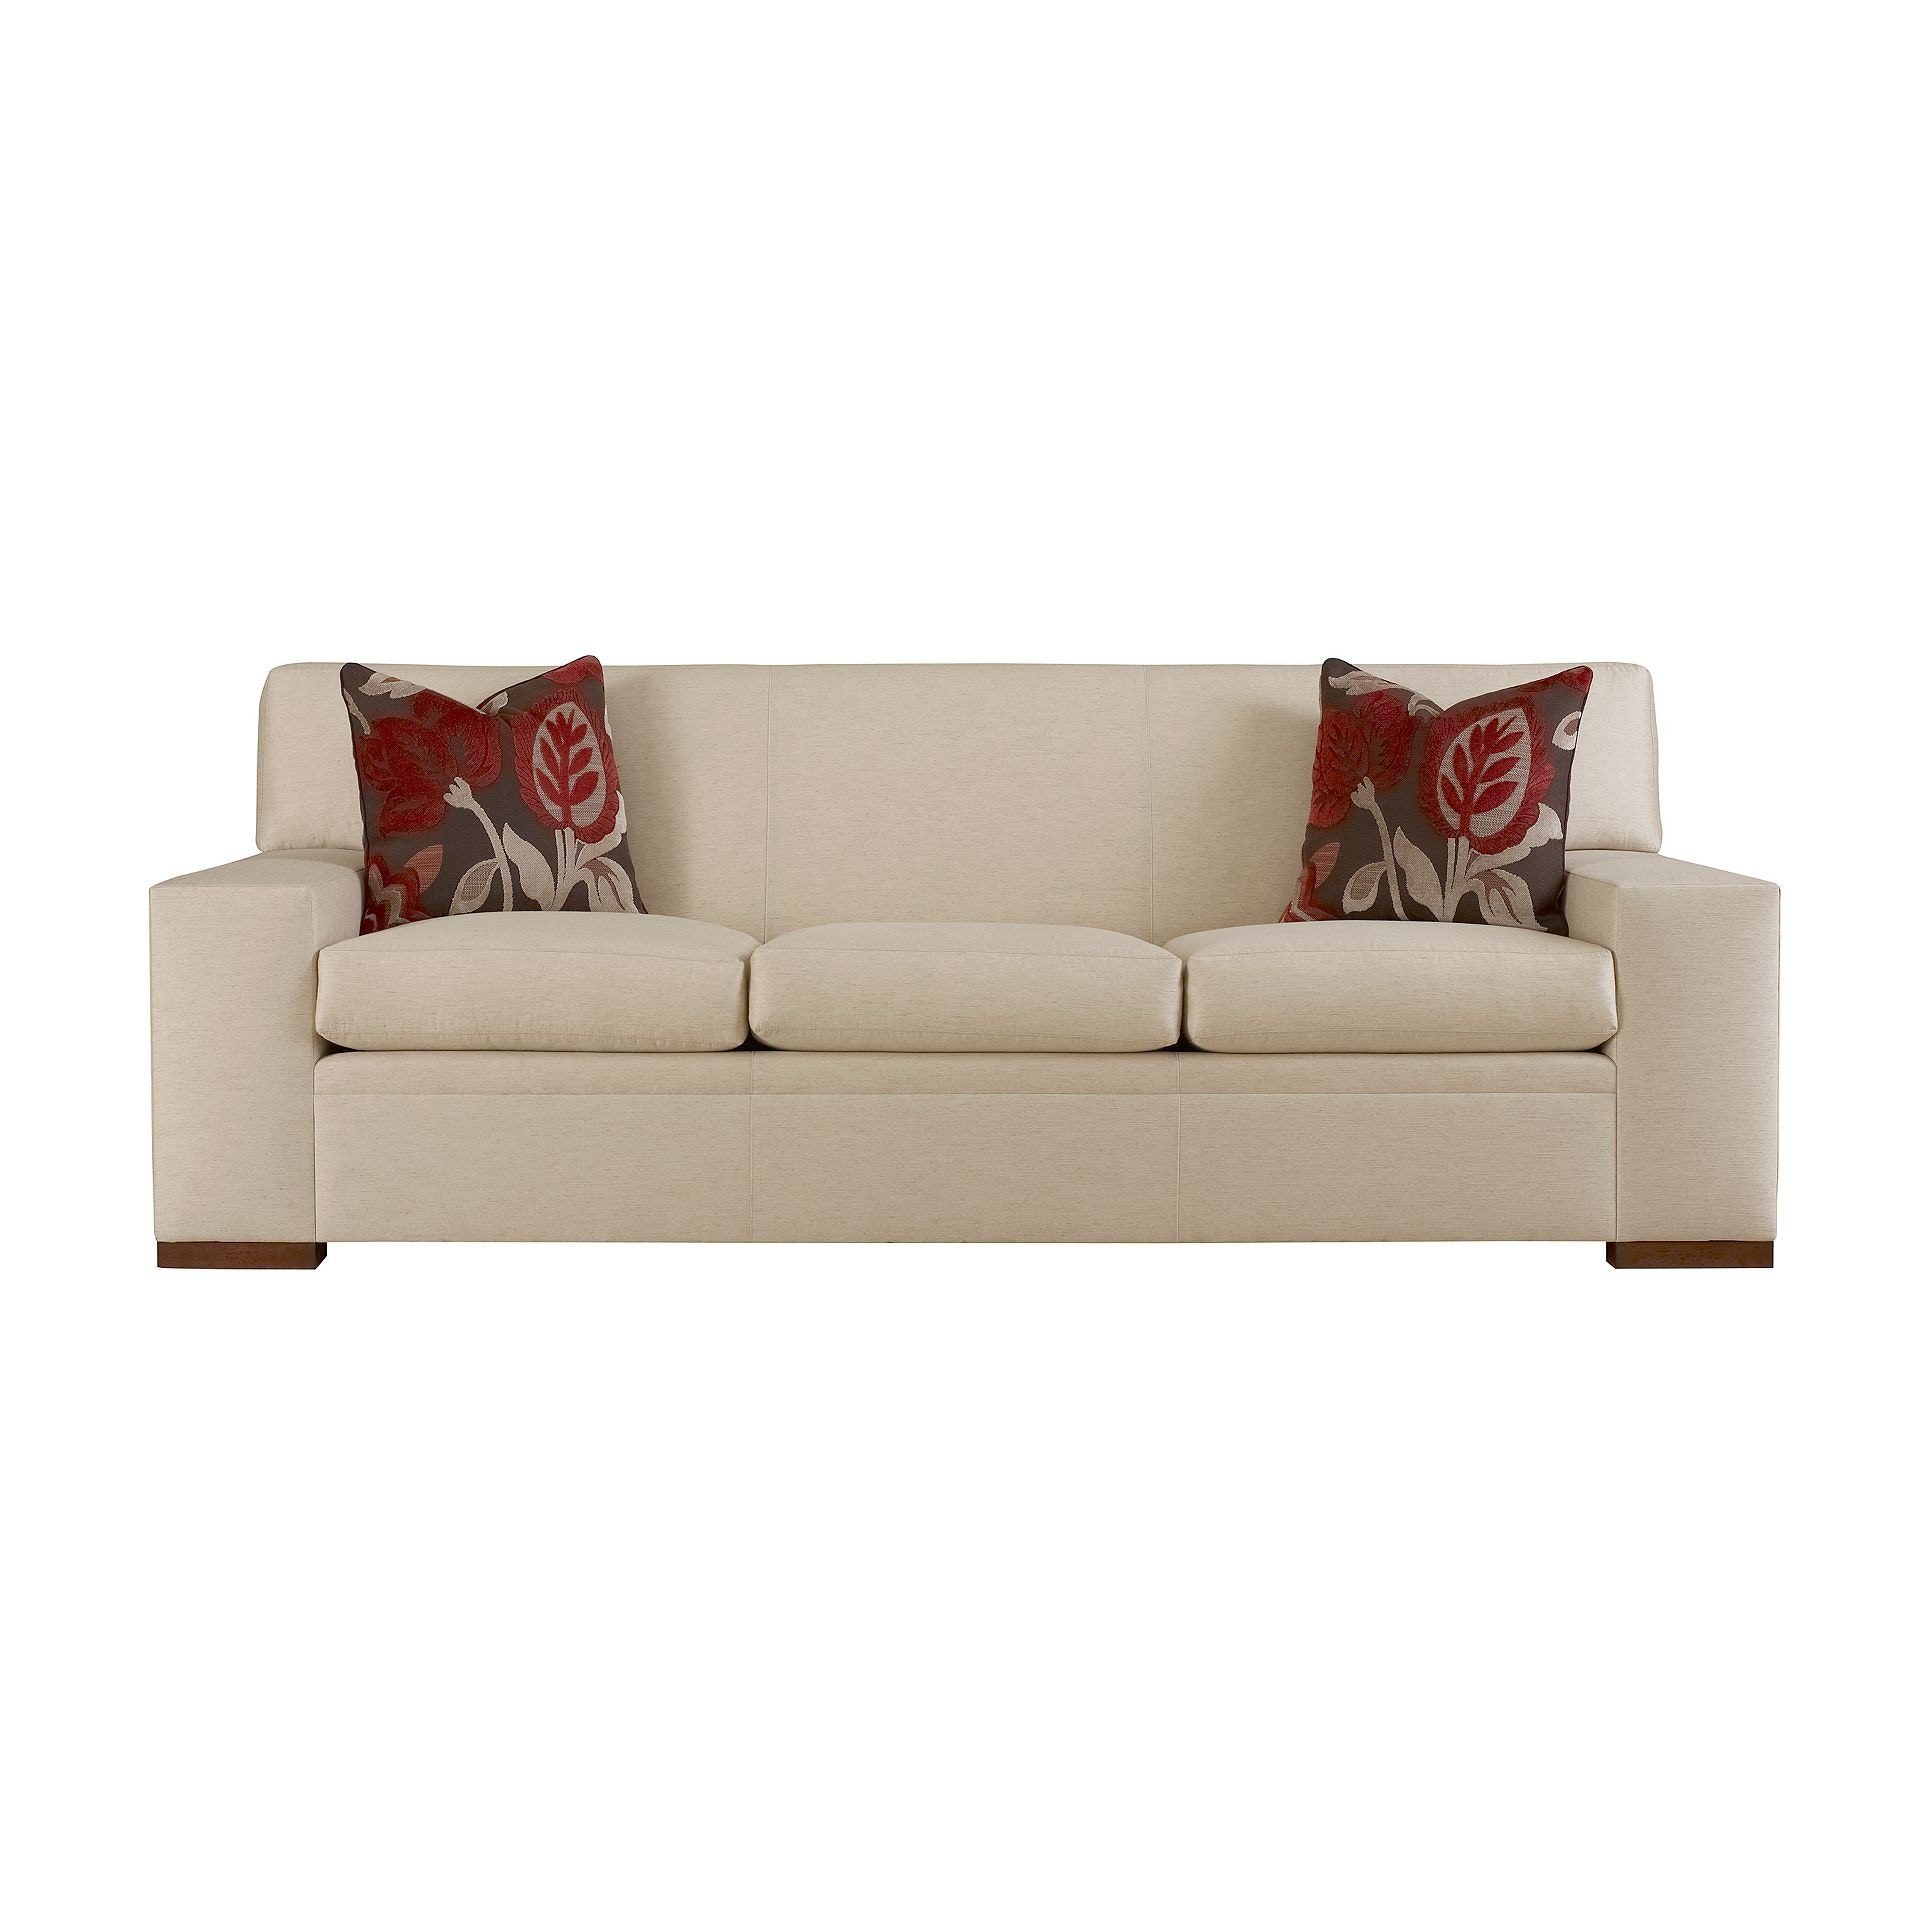 henredon furniture refinements custom upholstery refinements sofa h7700c sofa1